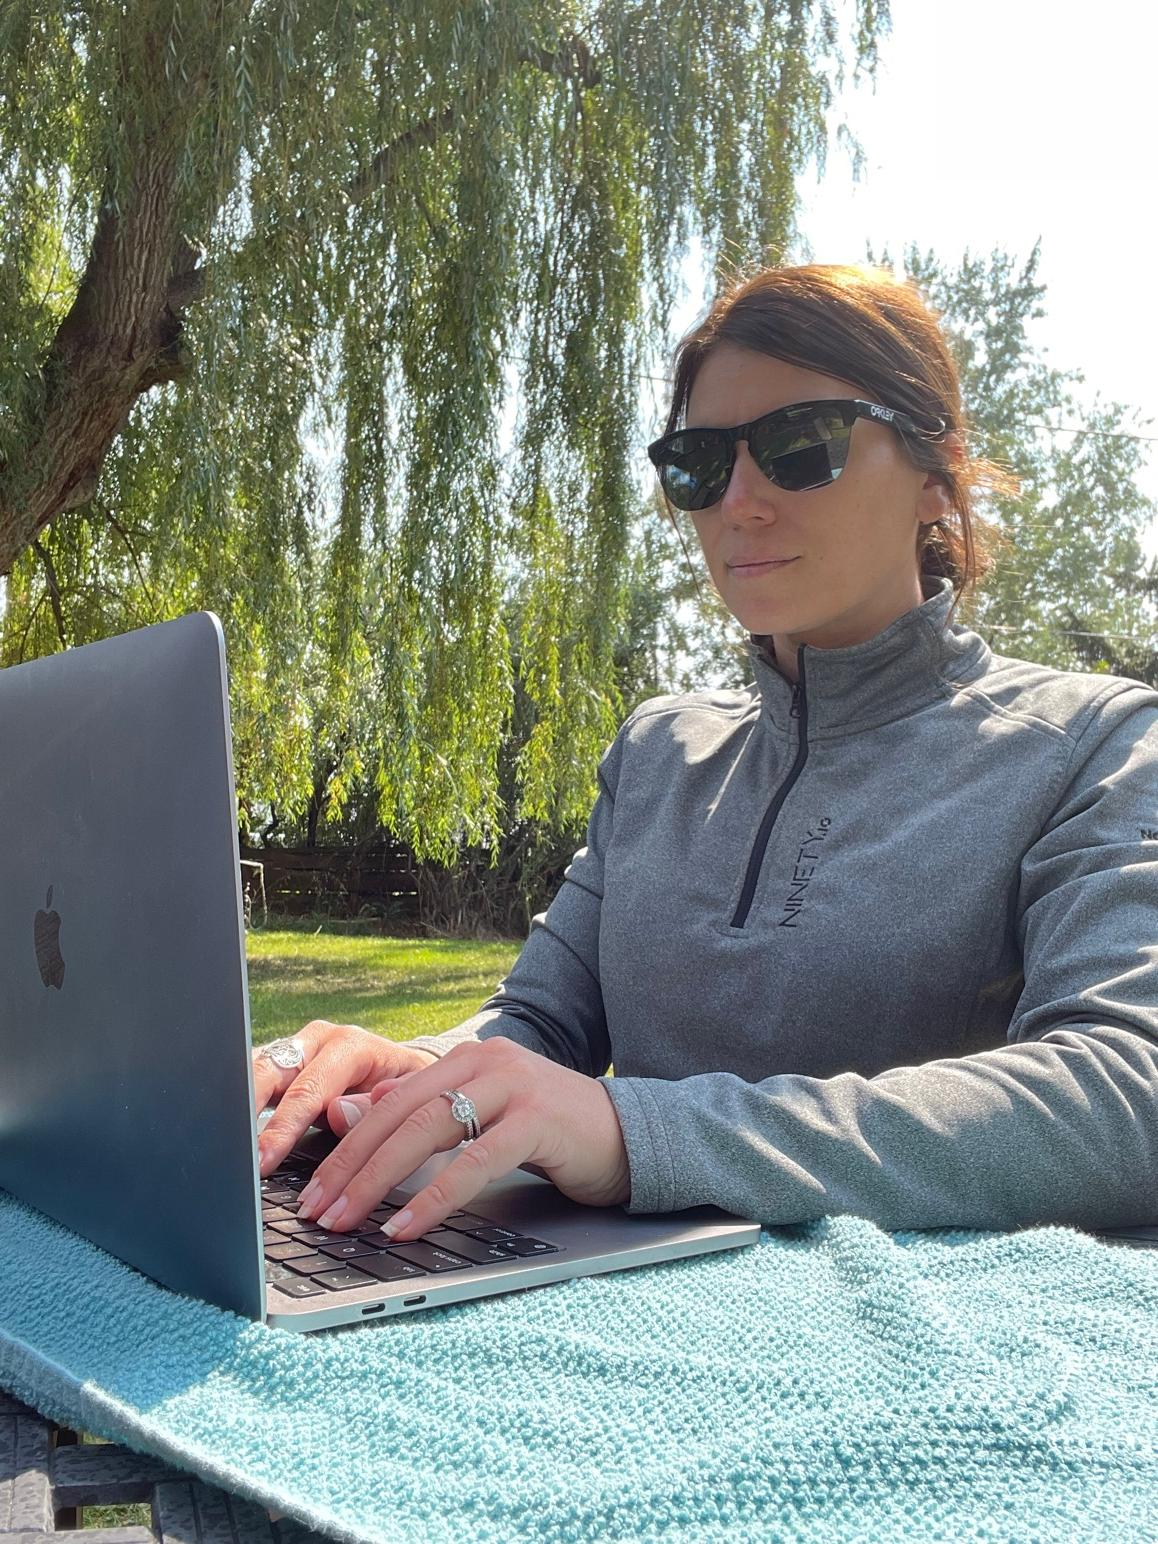 Jessica Sweetin, Author at Work From Anywhere